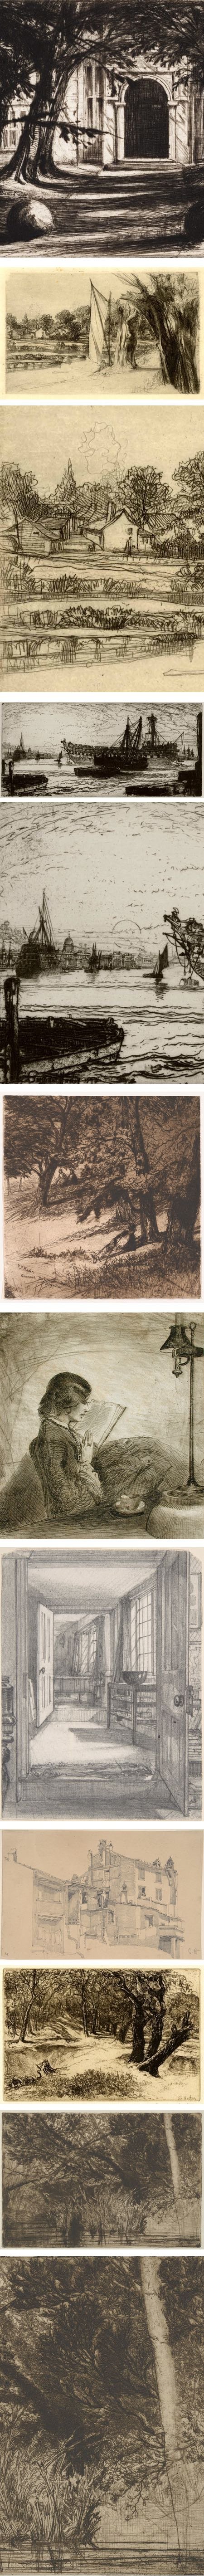 Francis Seymour Haden, etchings and drawings